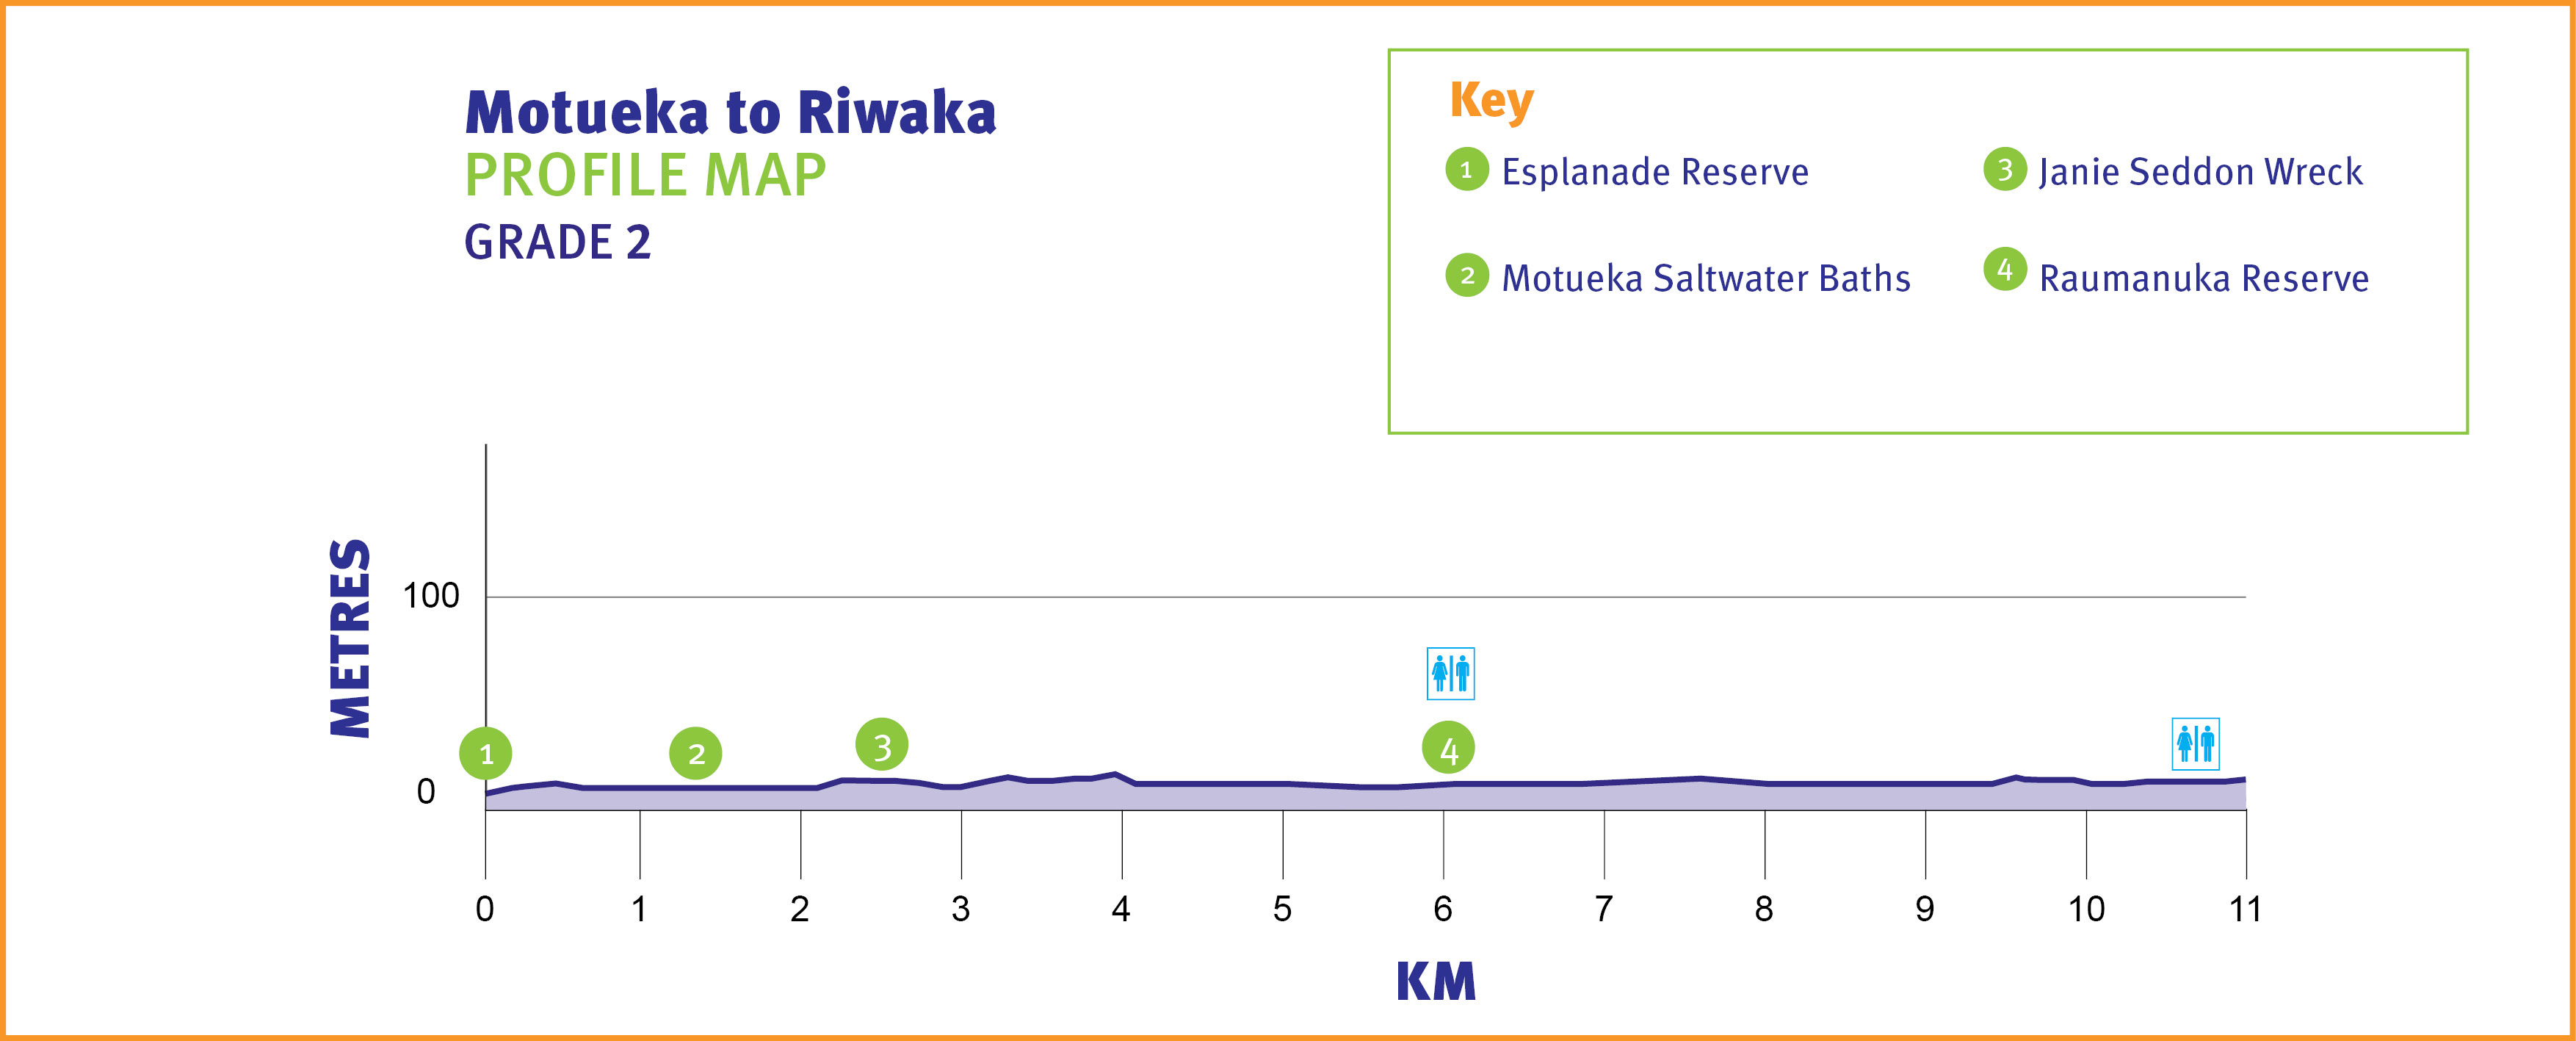 Motueka to Riwaka Profile Map